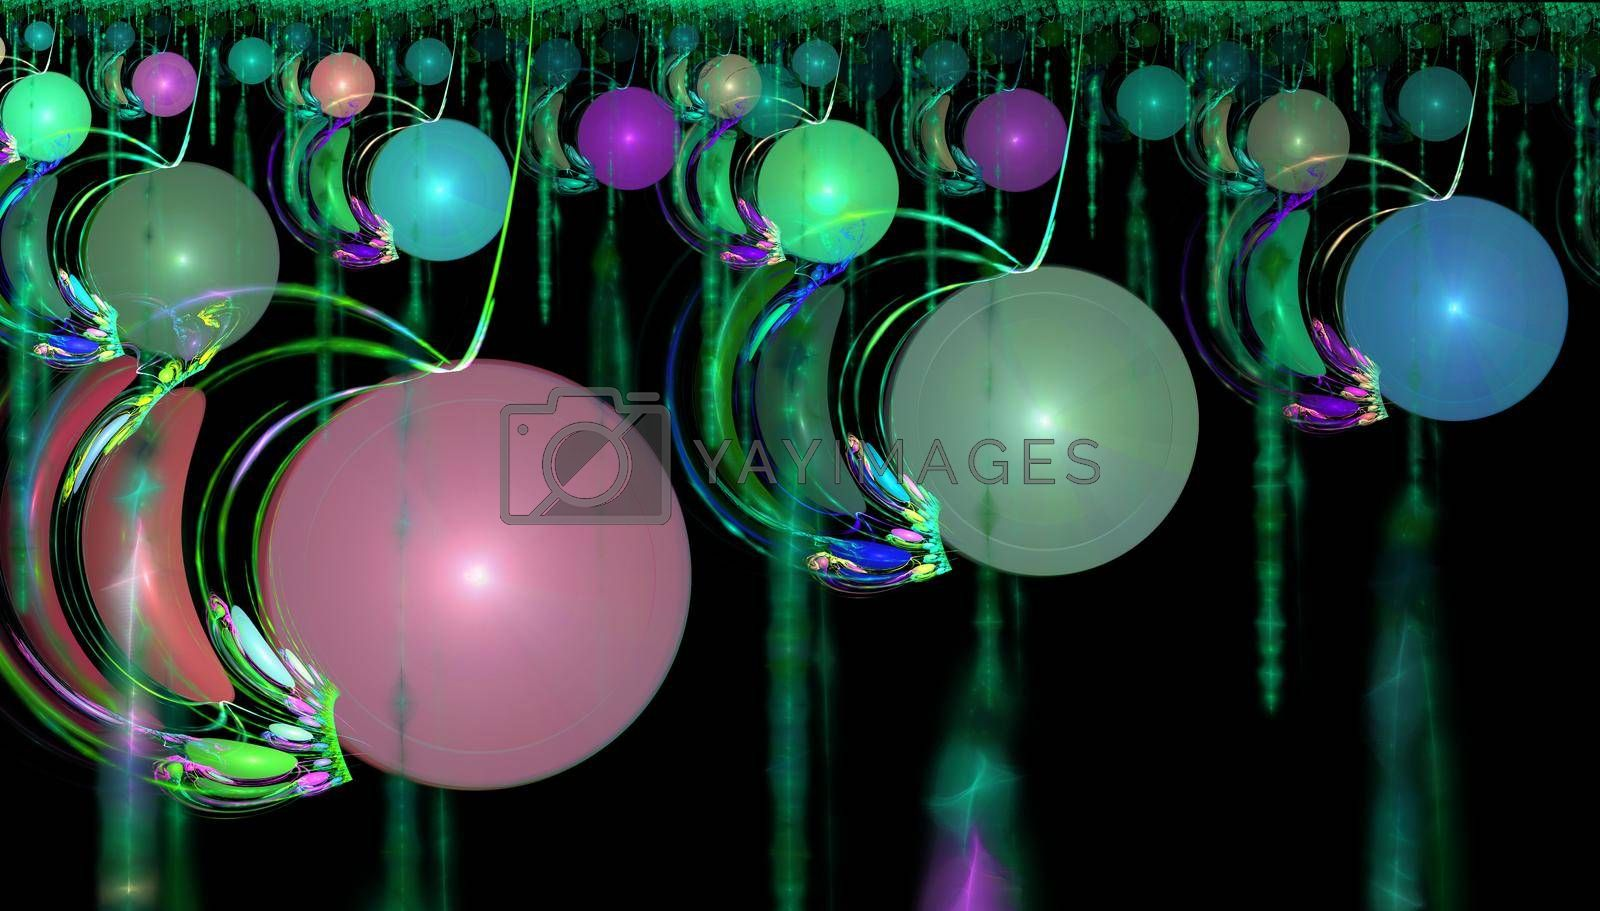 Fractal image of fantastic bizarre balls of different colors and sizes.